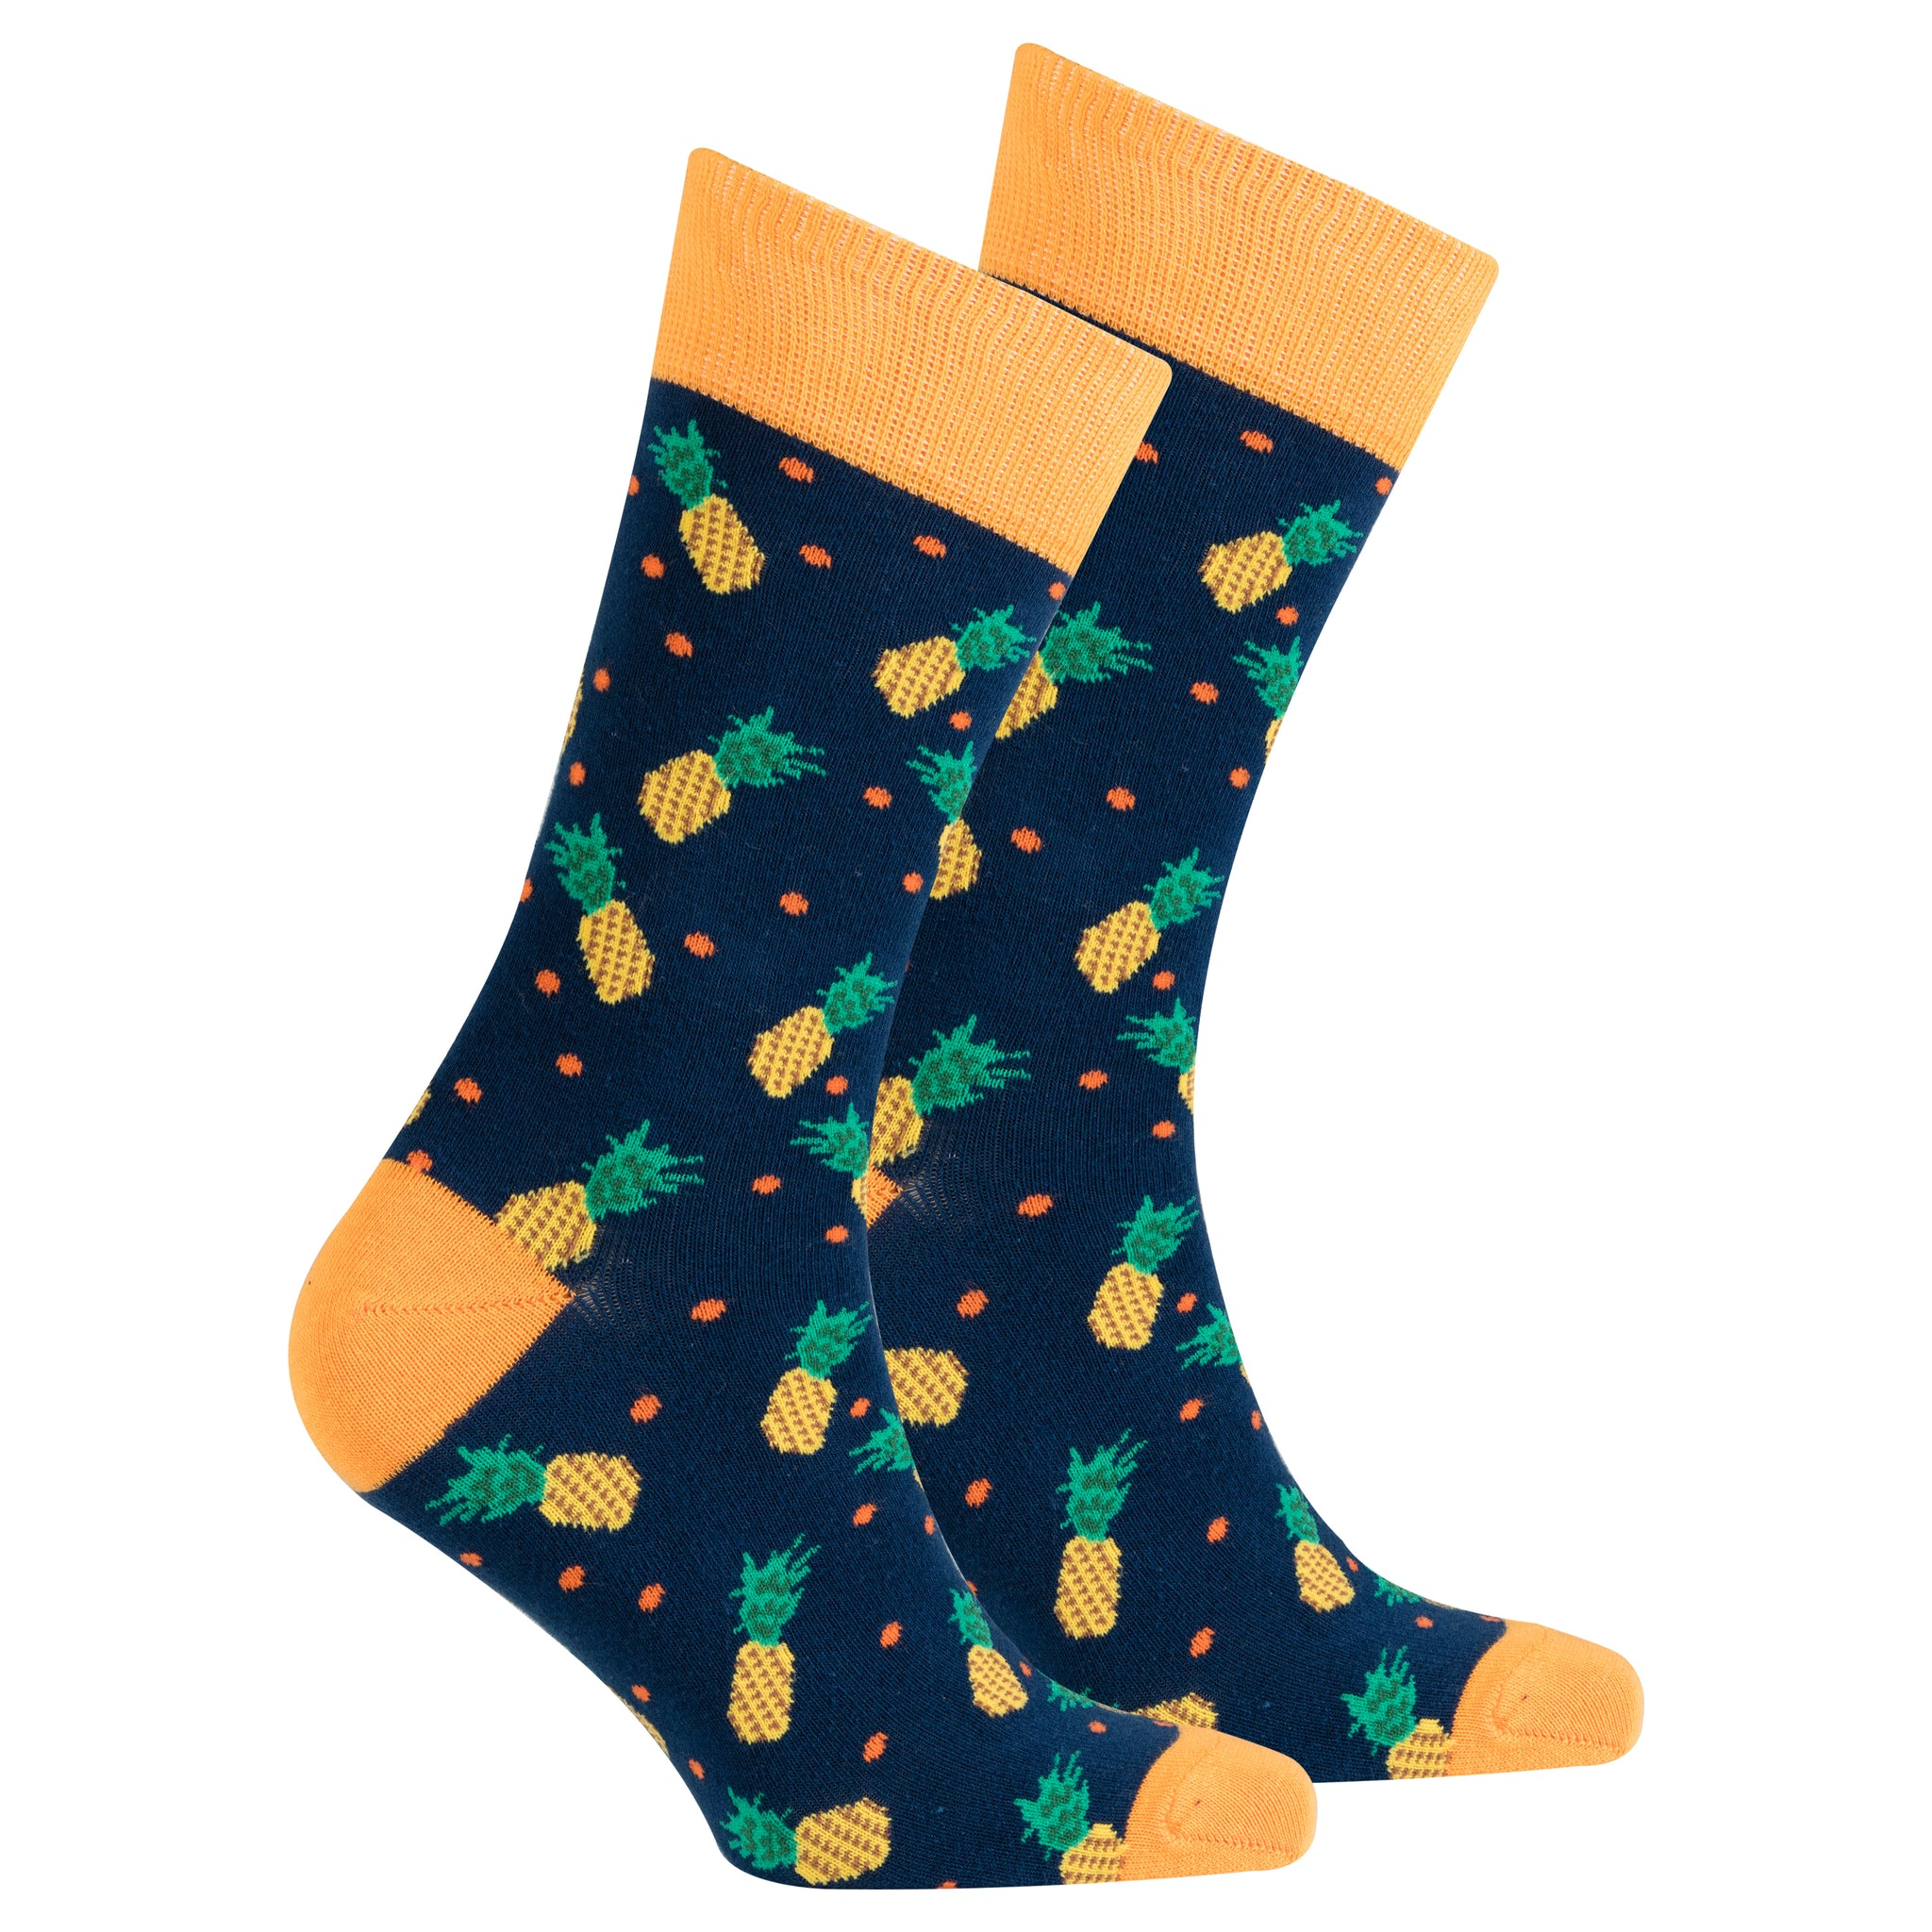 Men's Pineapple Socks